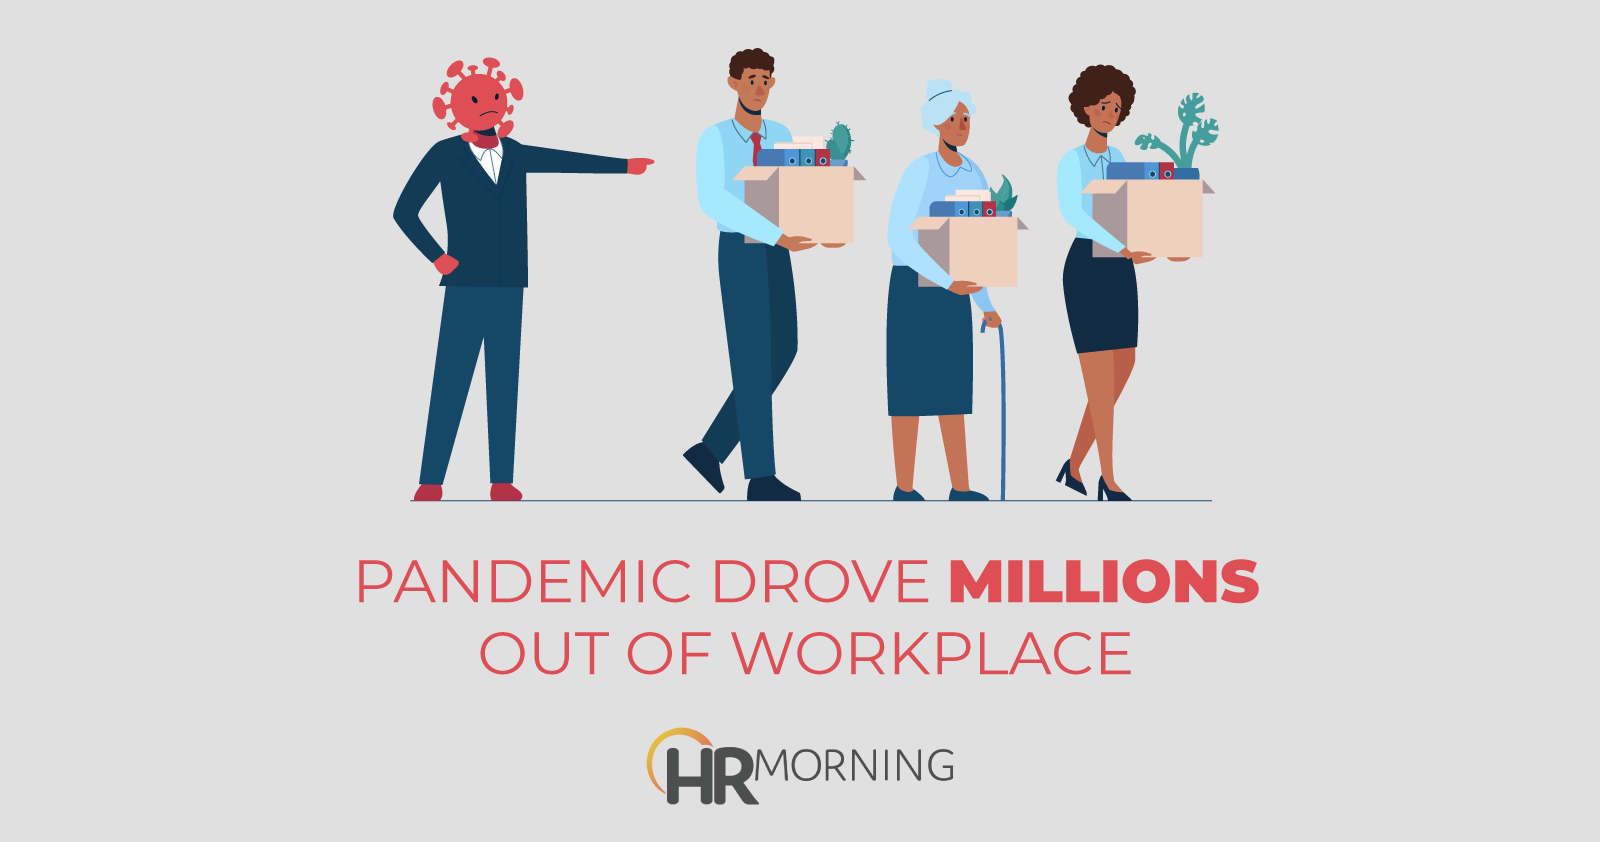 pandemic drove millions out of workplace